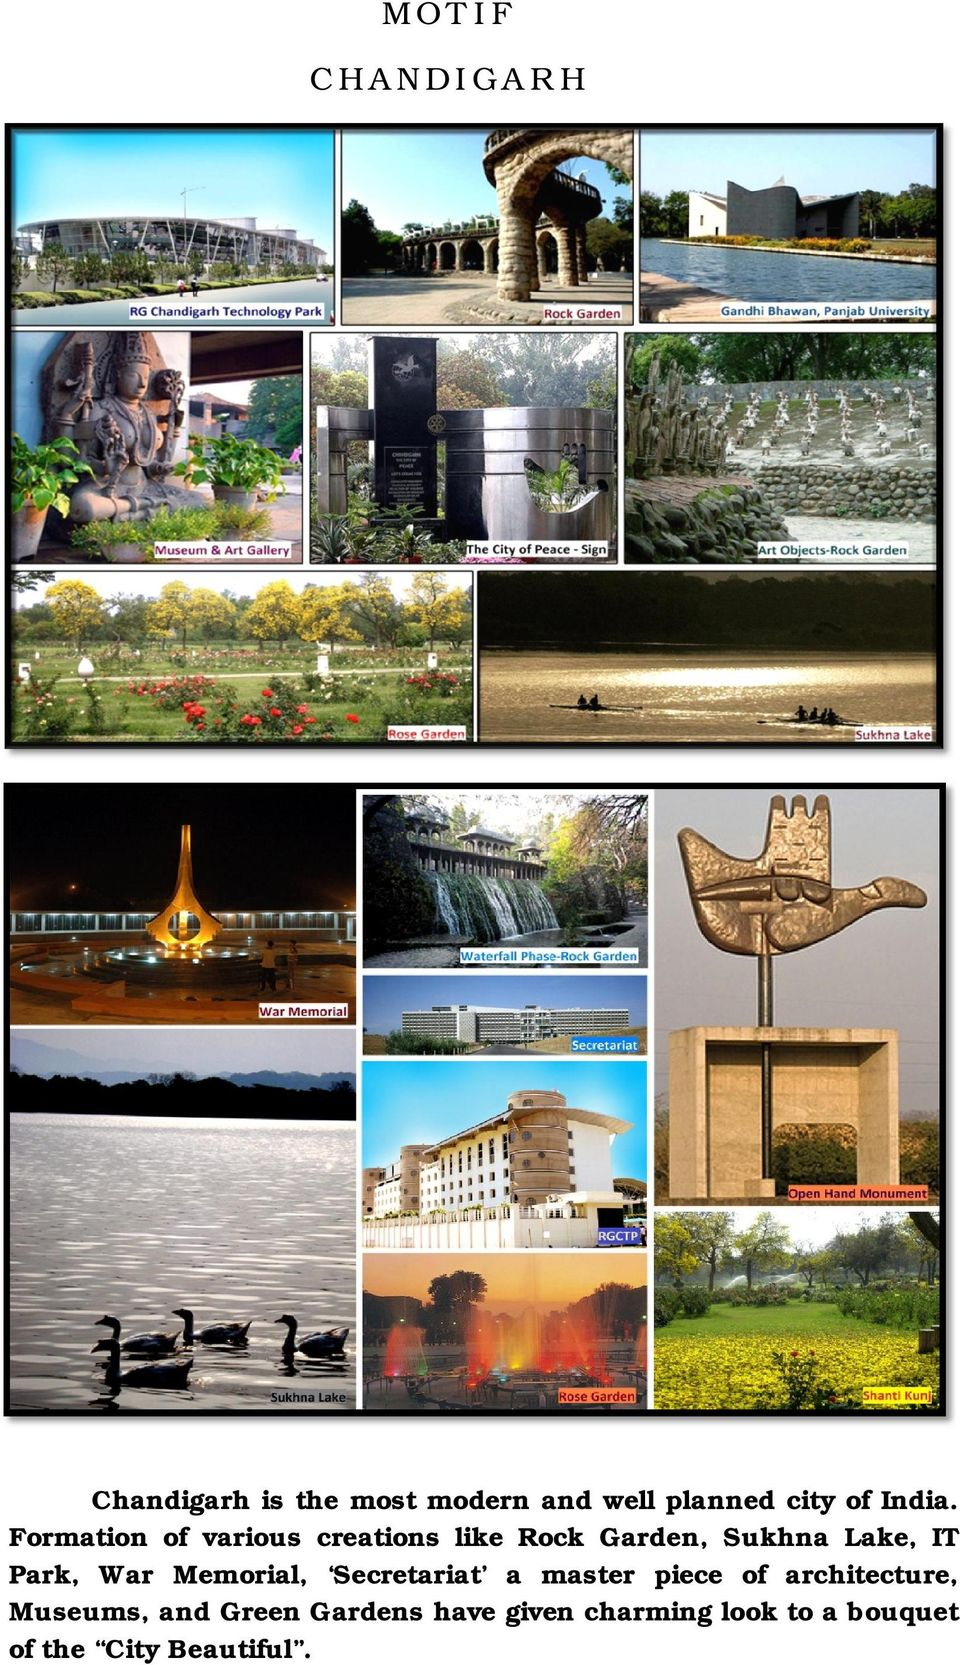 Formation of various creations like Rock Garden, Sukhna Lake, IT Park,